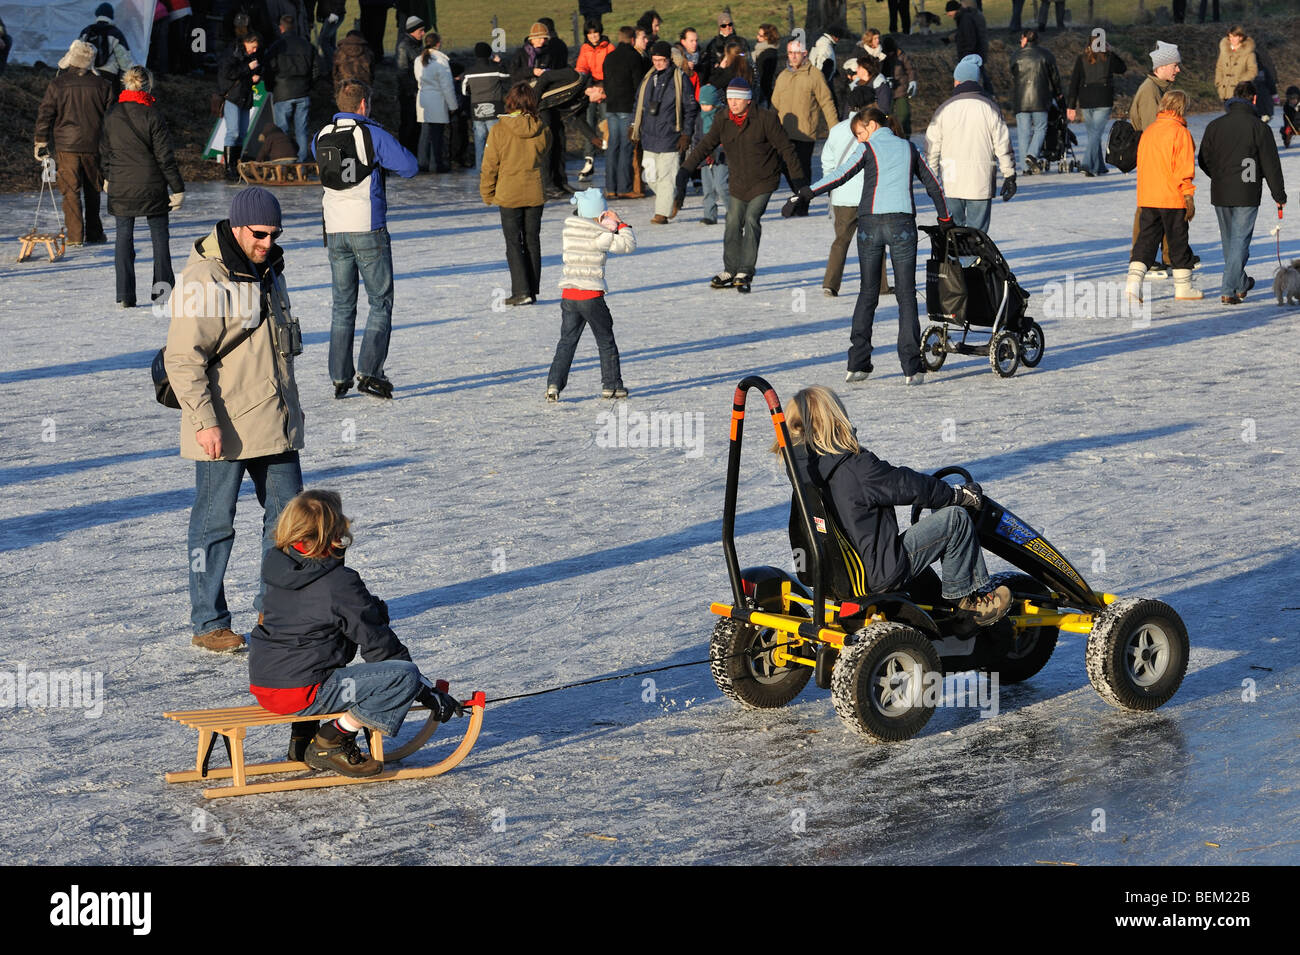 Child on sledge pulled by go-cart among ice skaters skating on ice of frozen river in winter - Stock Image